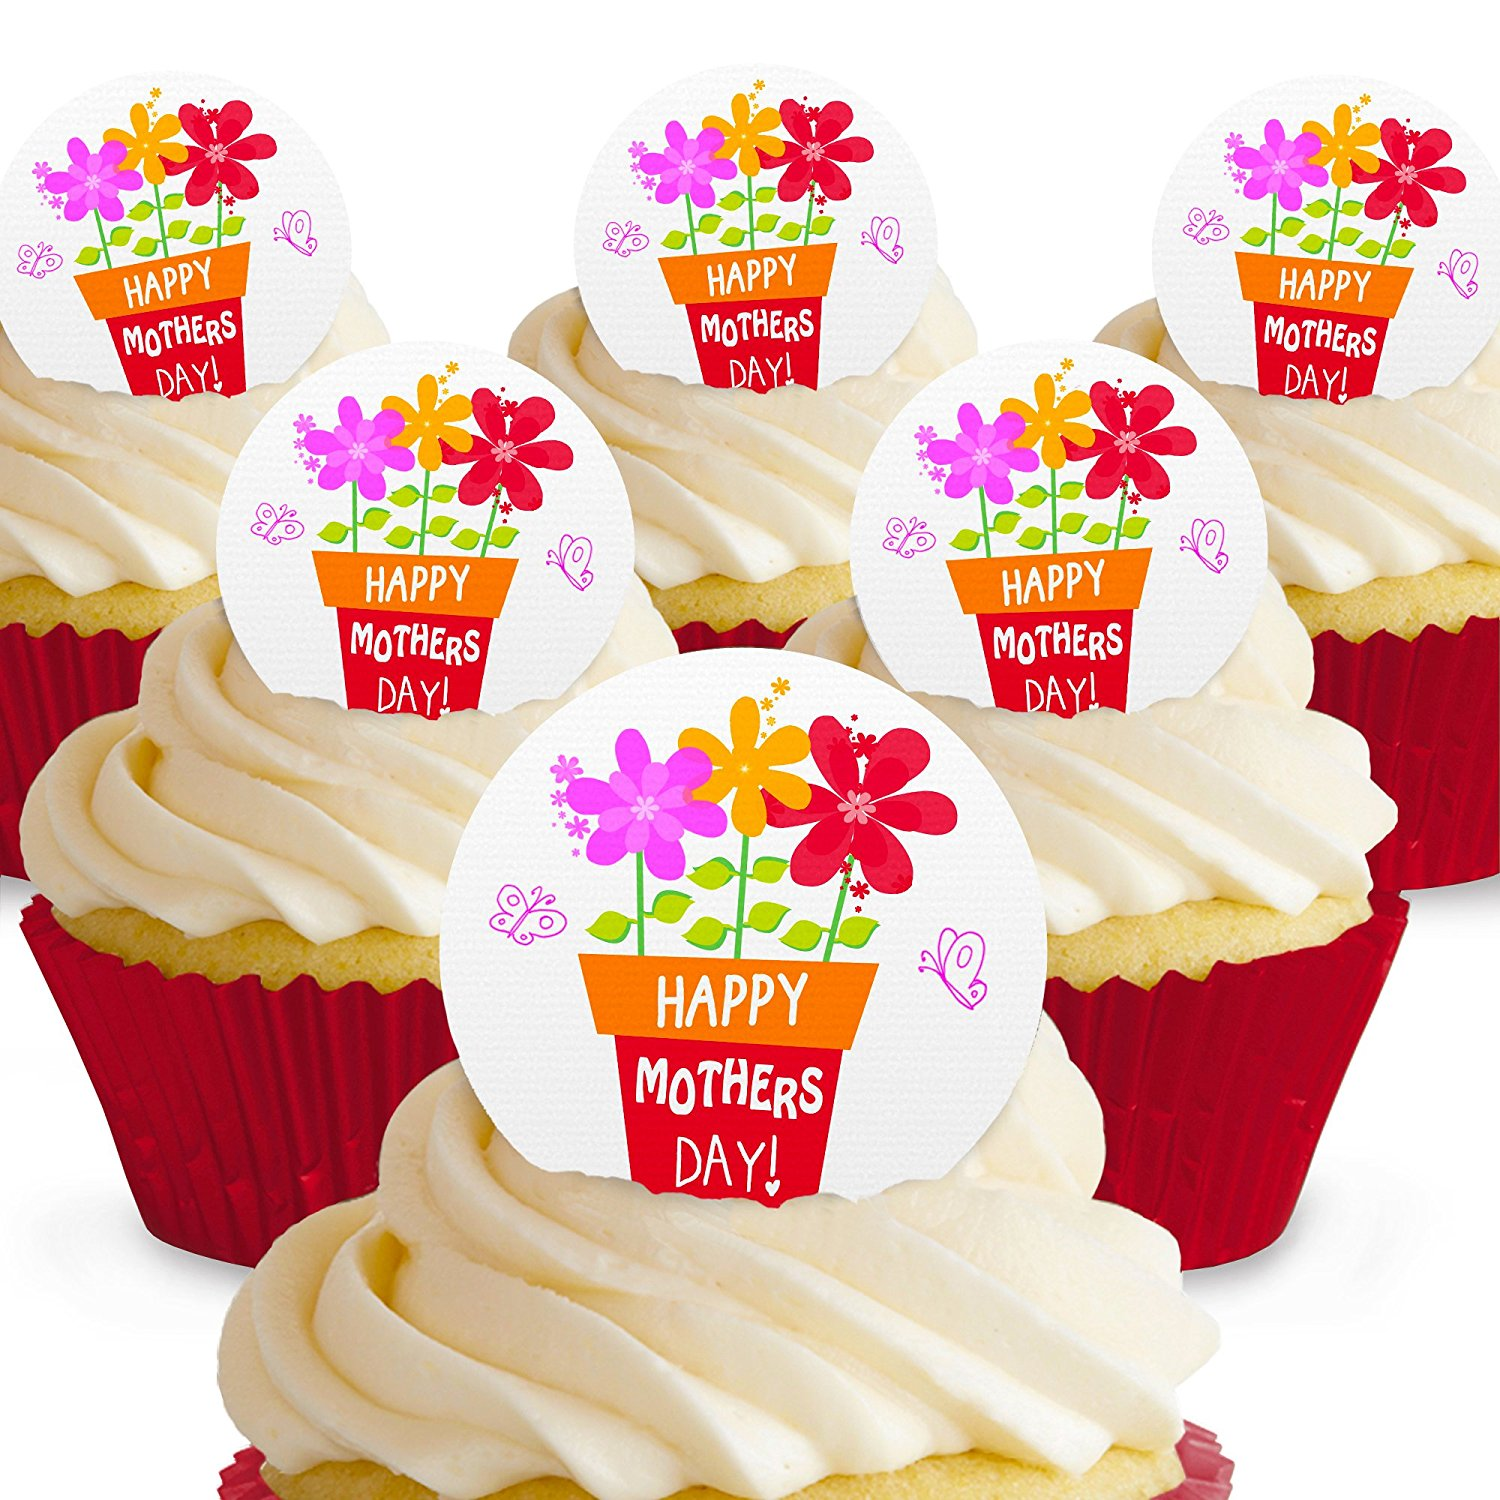 Cakeshop 12 x PRE-CUT Happy Mothers Day Plant Pot Edible Cake Toppers